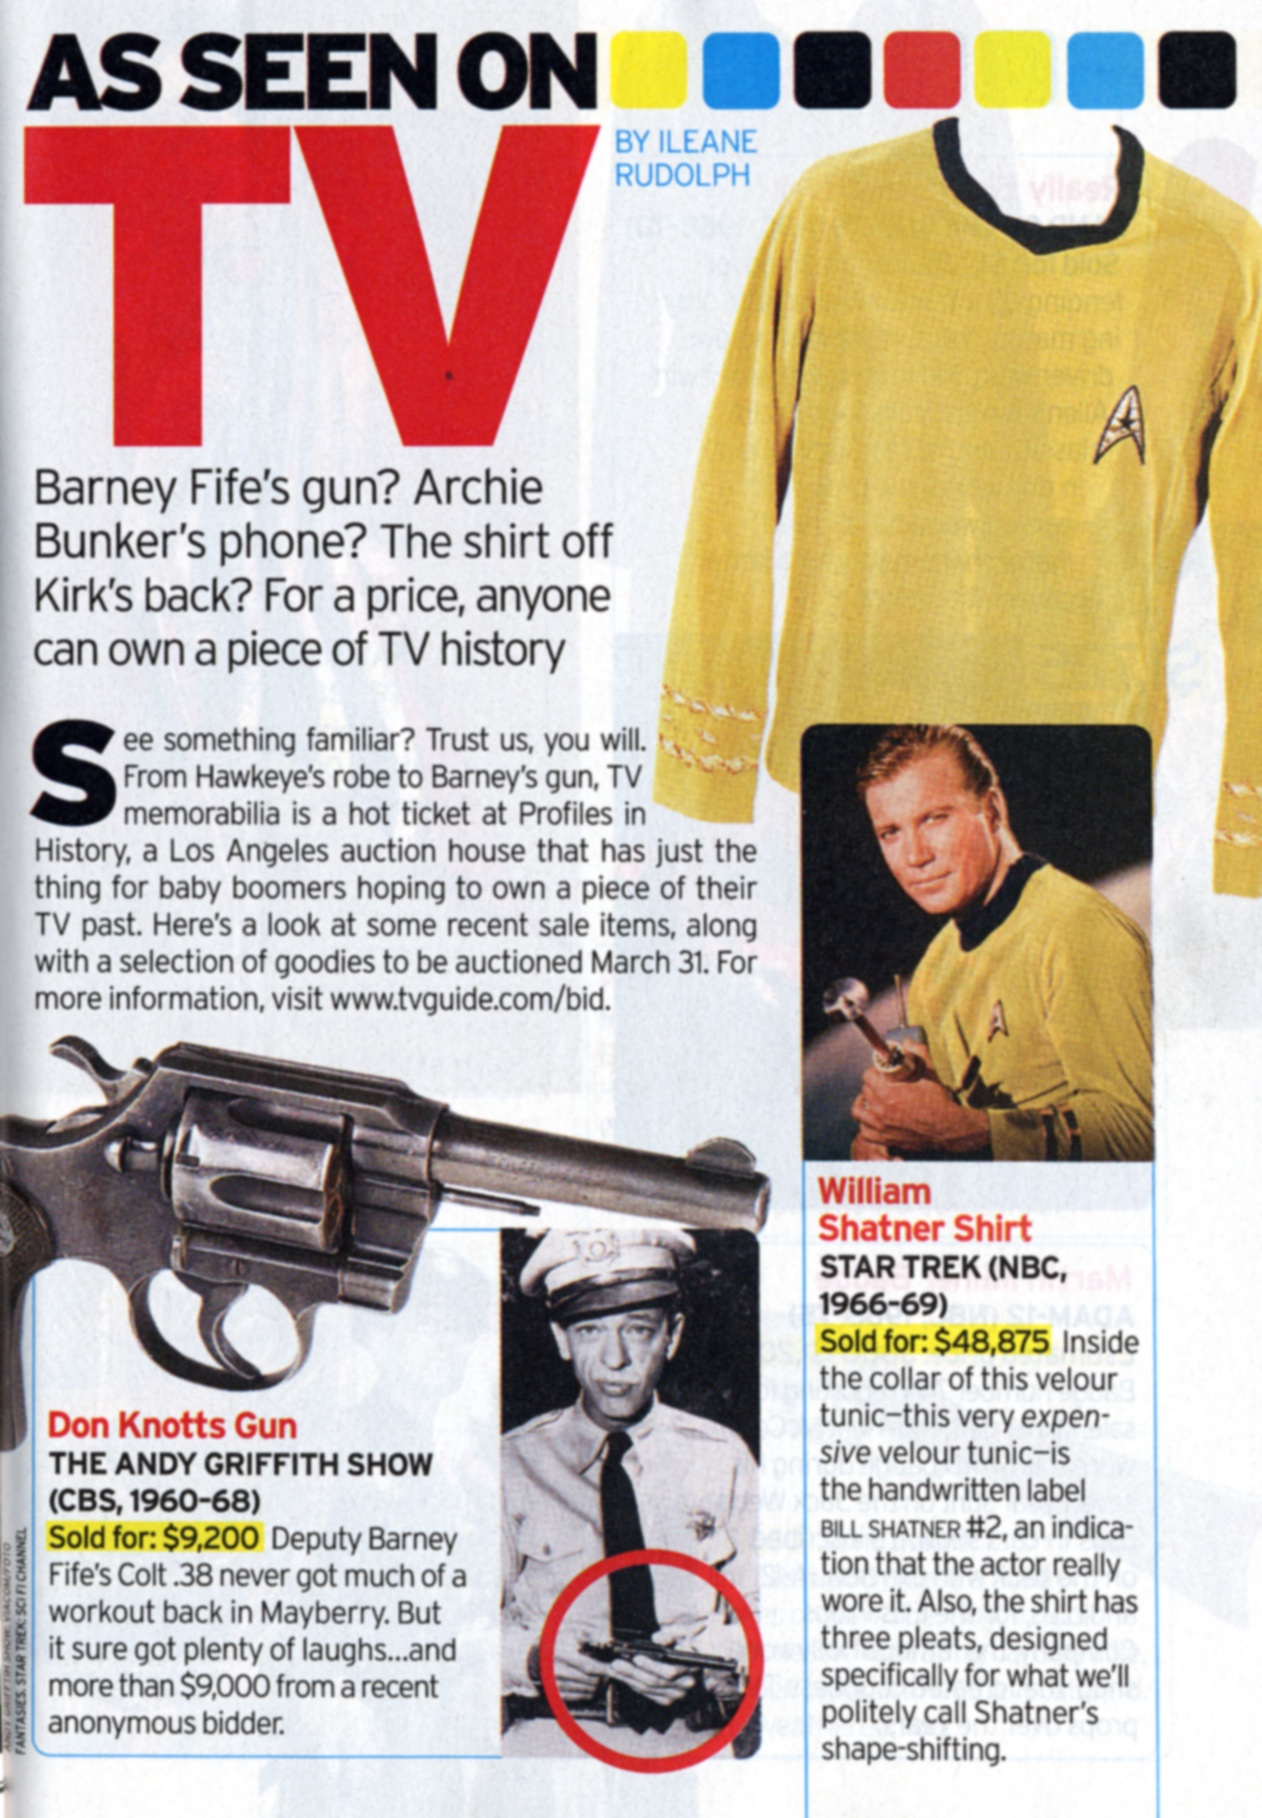 TV Guide article with Barney Fife's gun, Don Knotts Gun, William Shatner Shirt from Star Trek